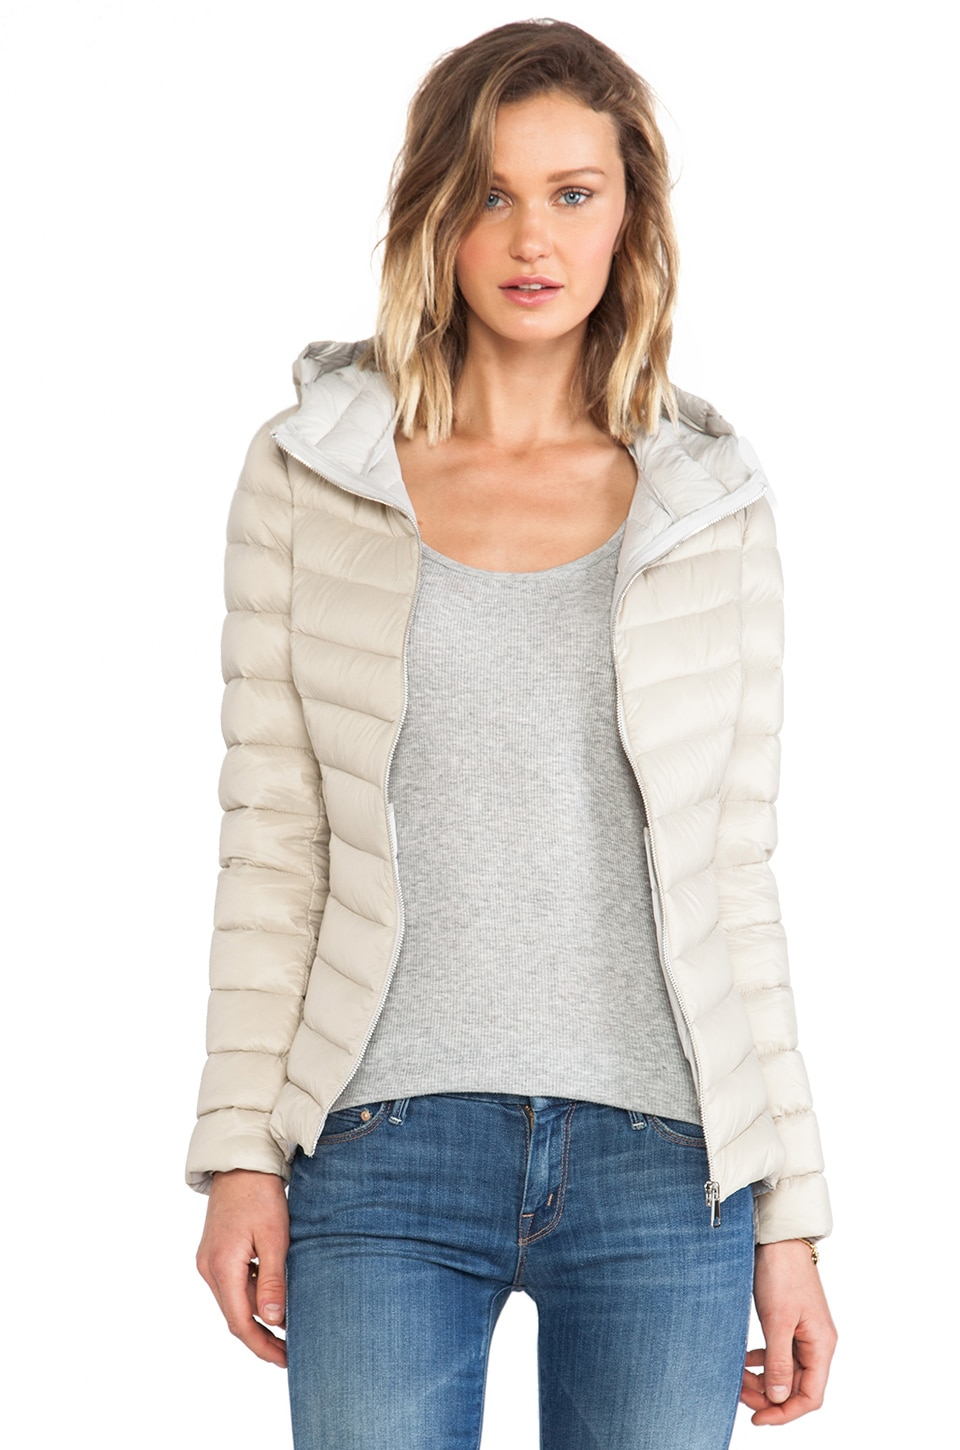 Soia & Kyo Elfy Lightweight Down Jacket in Oatmeal